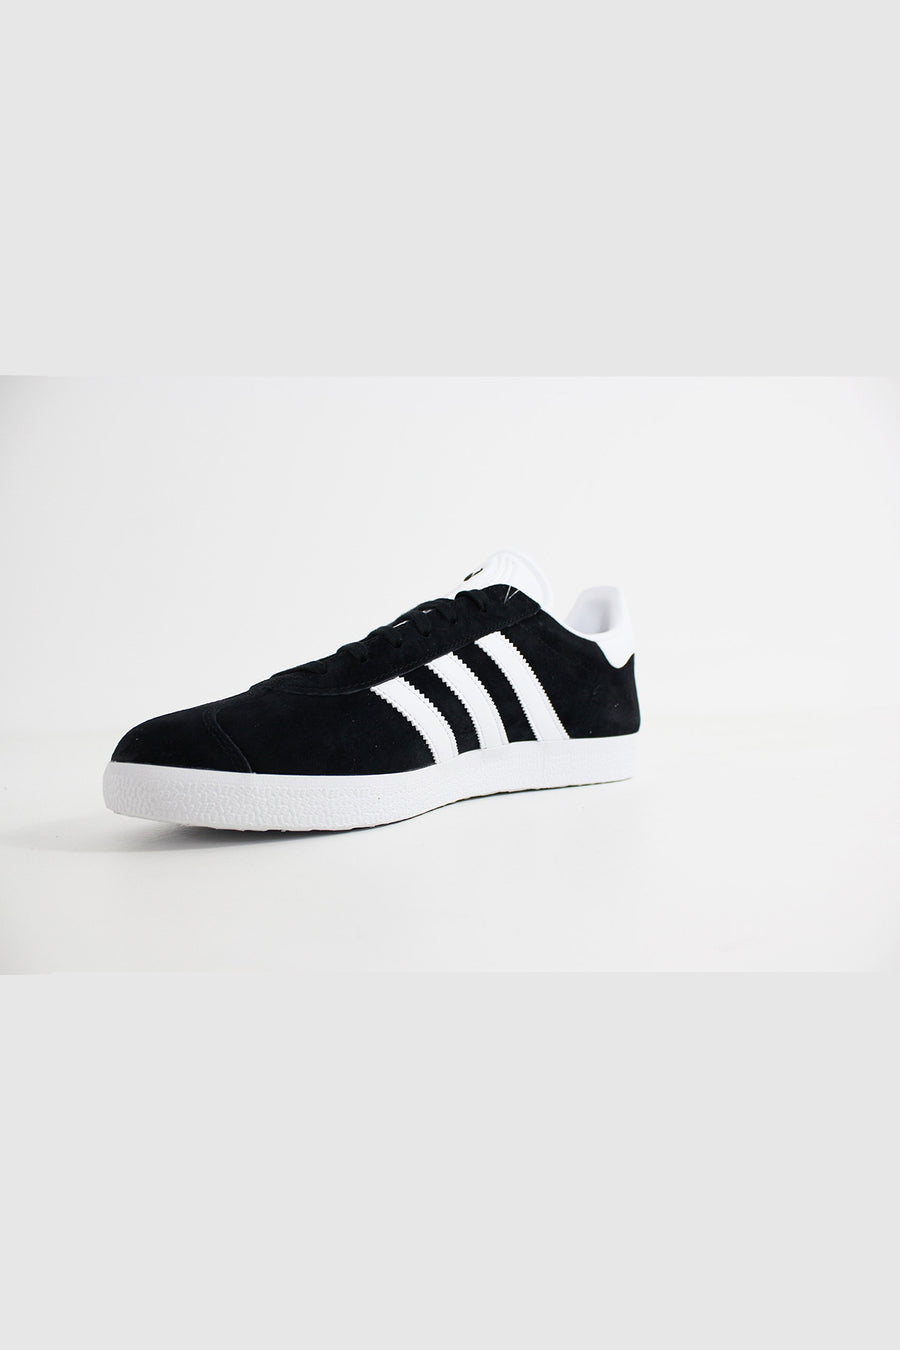 Adidas - Gazelle (Core Black/ White/ Gold Met.) BB5476